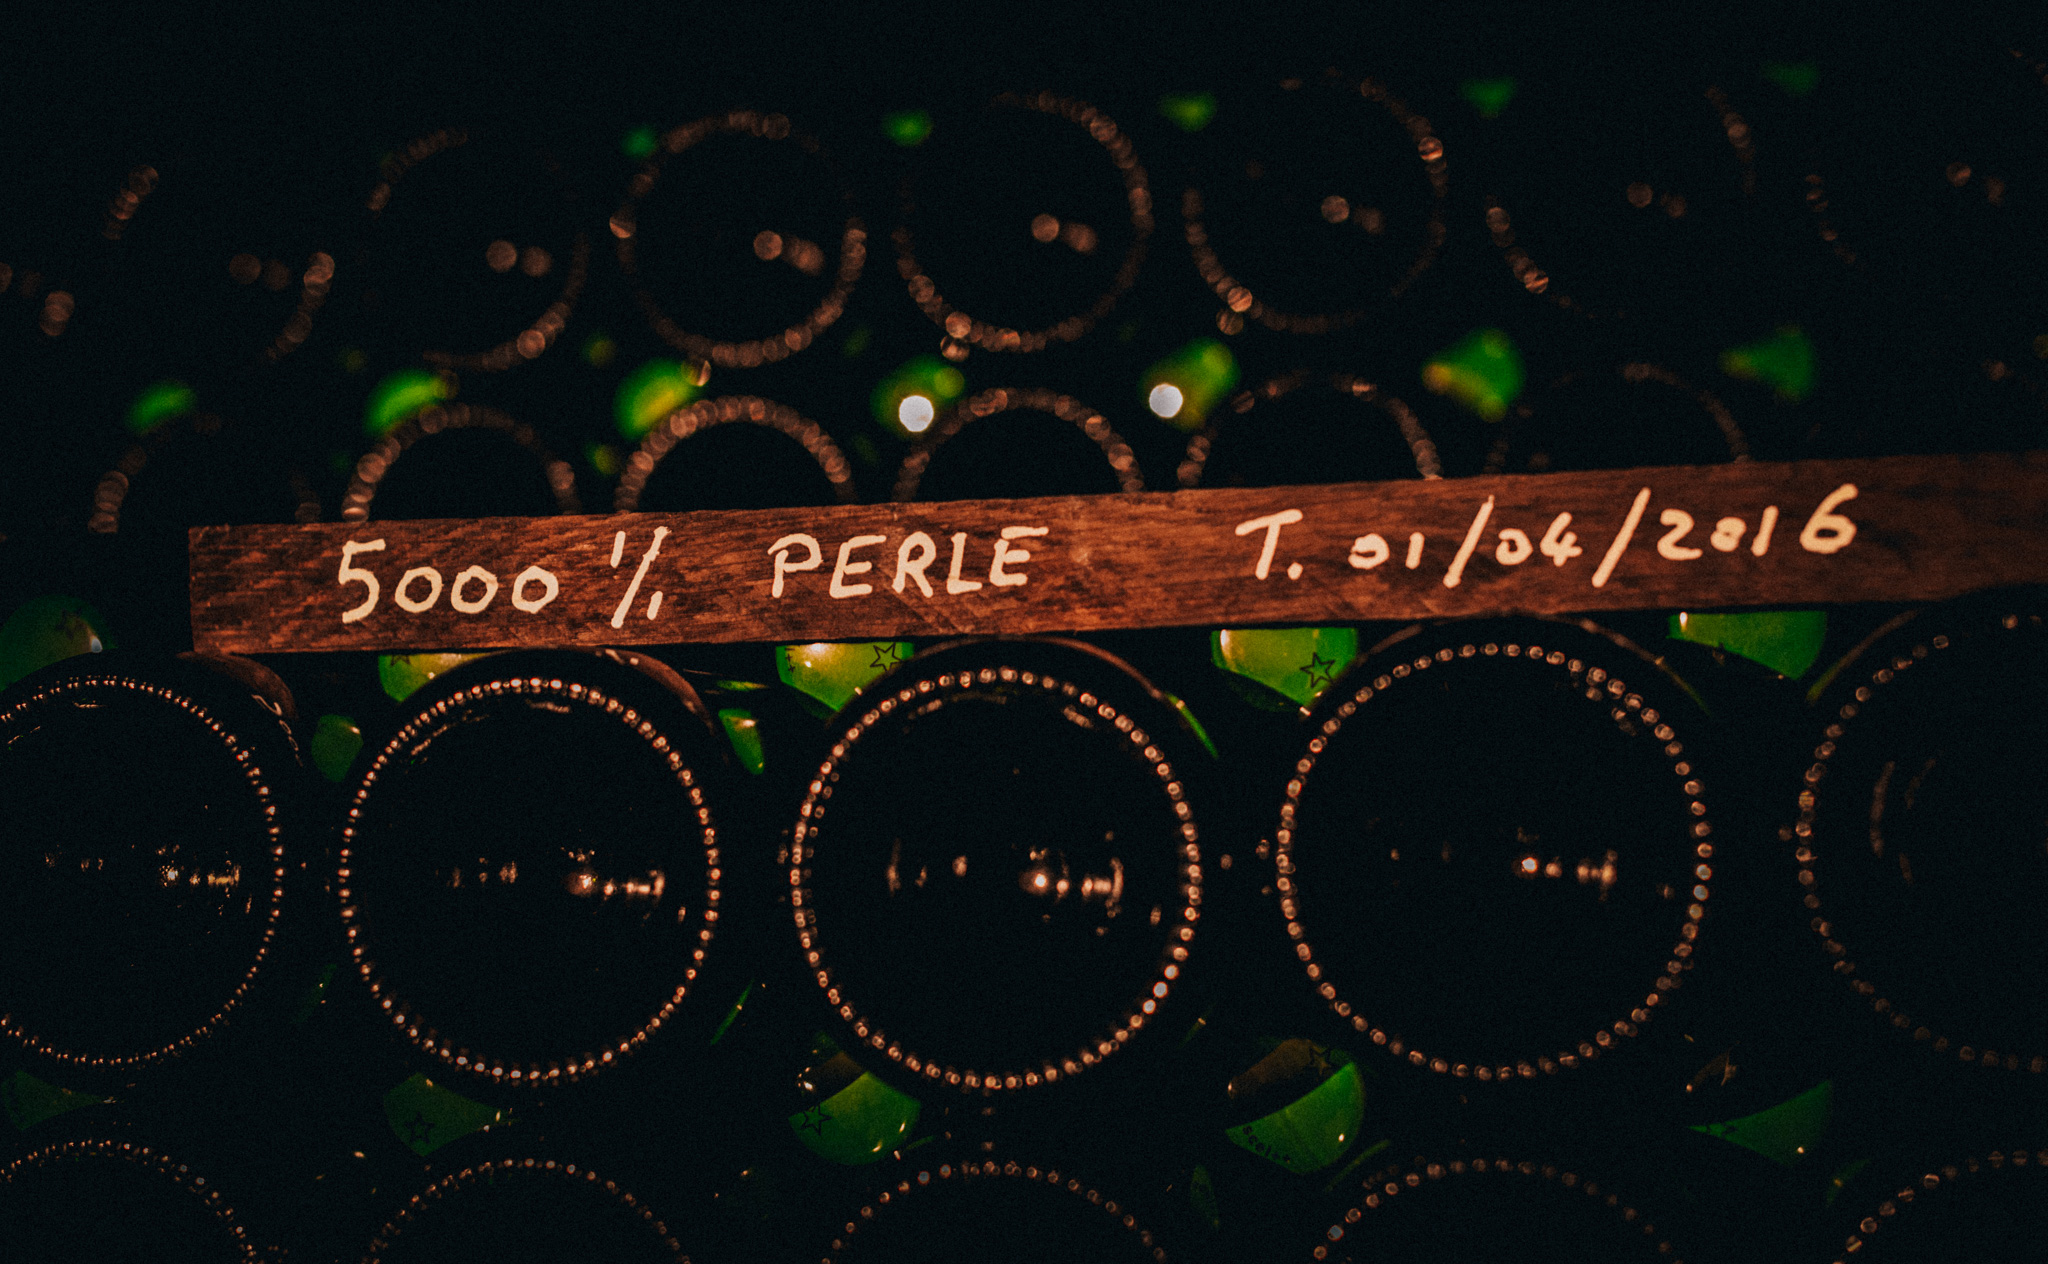 France : Champagne : In the cellar at Lilbert in Cramant